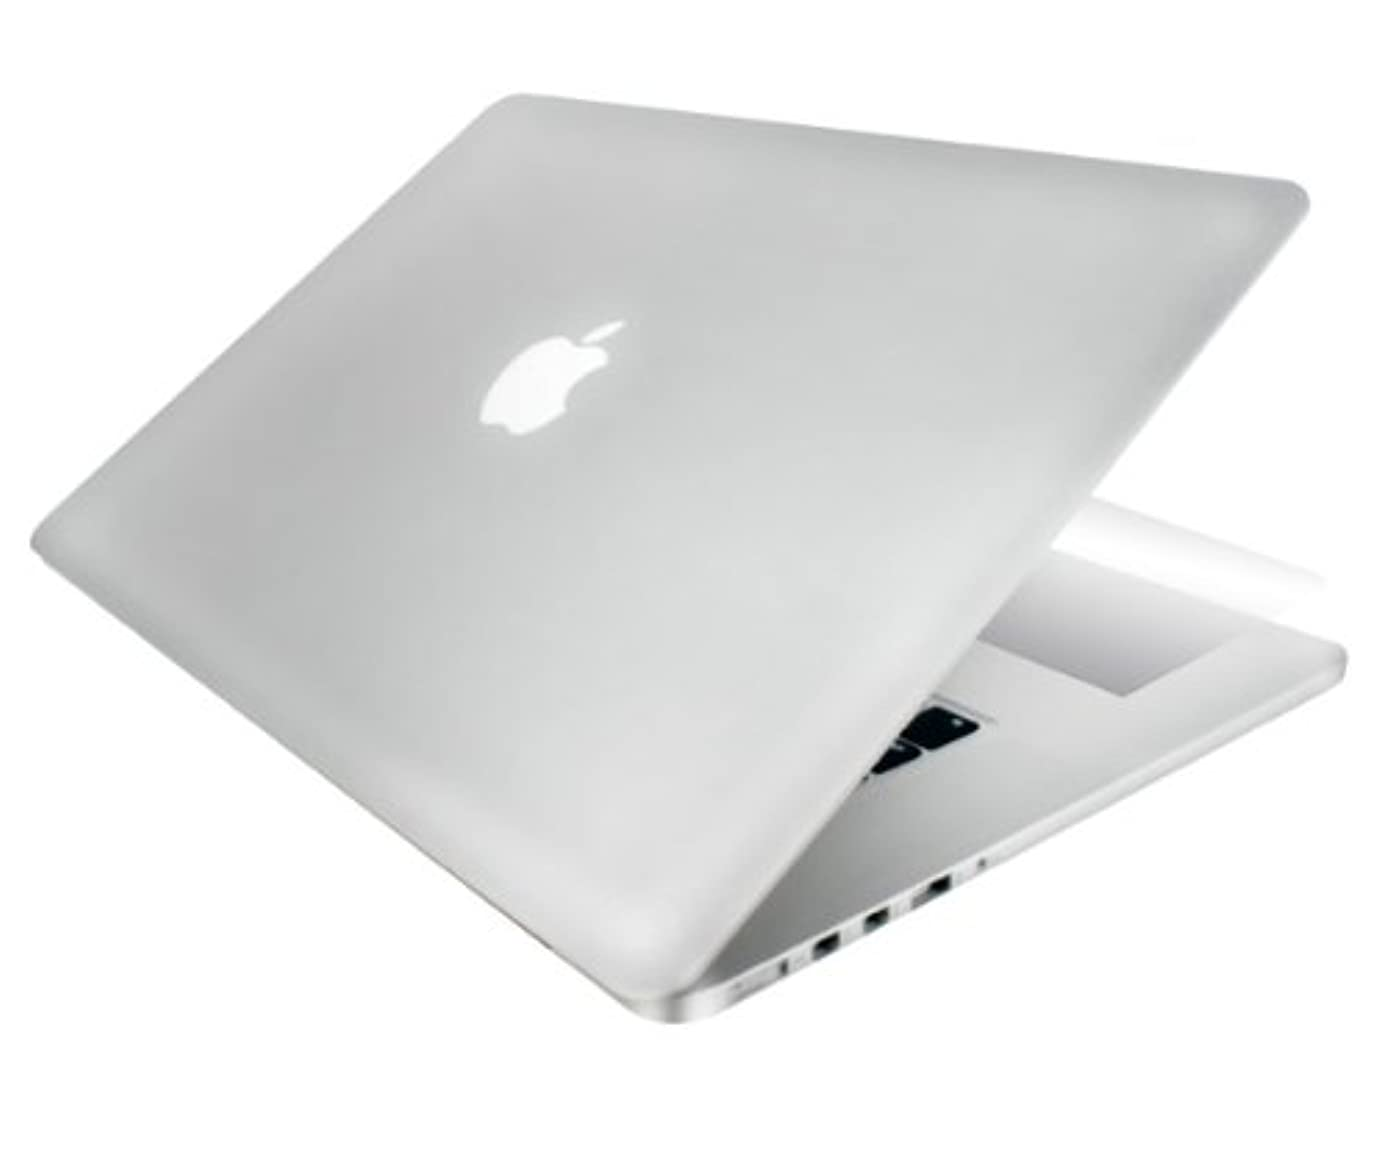 BodyGuardz Ultra Tough Clear Skins Body Protector for 13-Inch Apple MacBook Air (2013) - Wrist/Track Pad Only (BZ-UM3AW-0713)